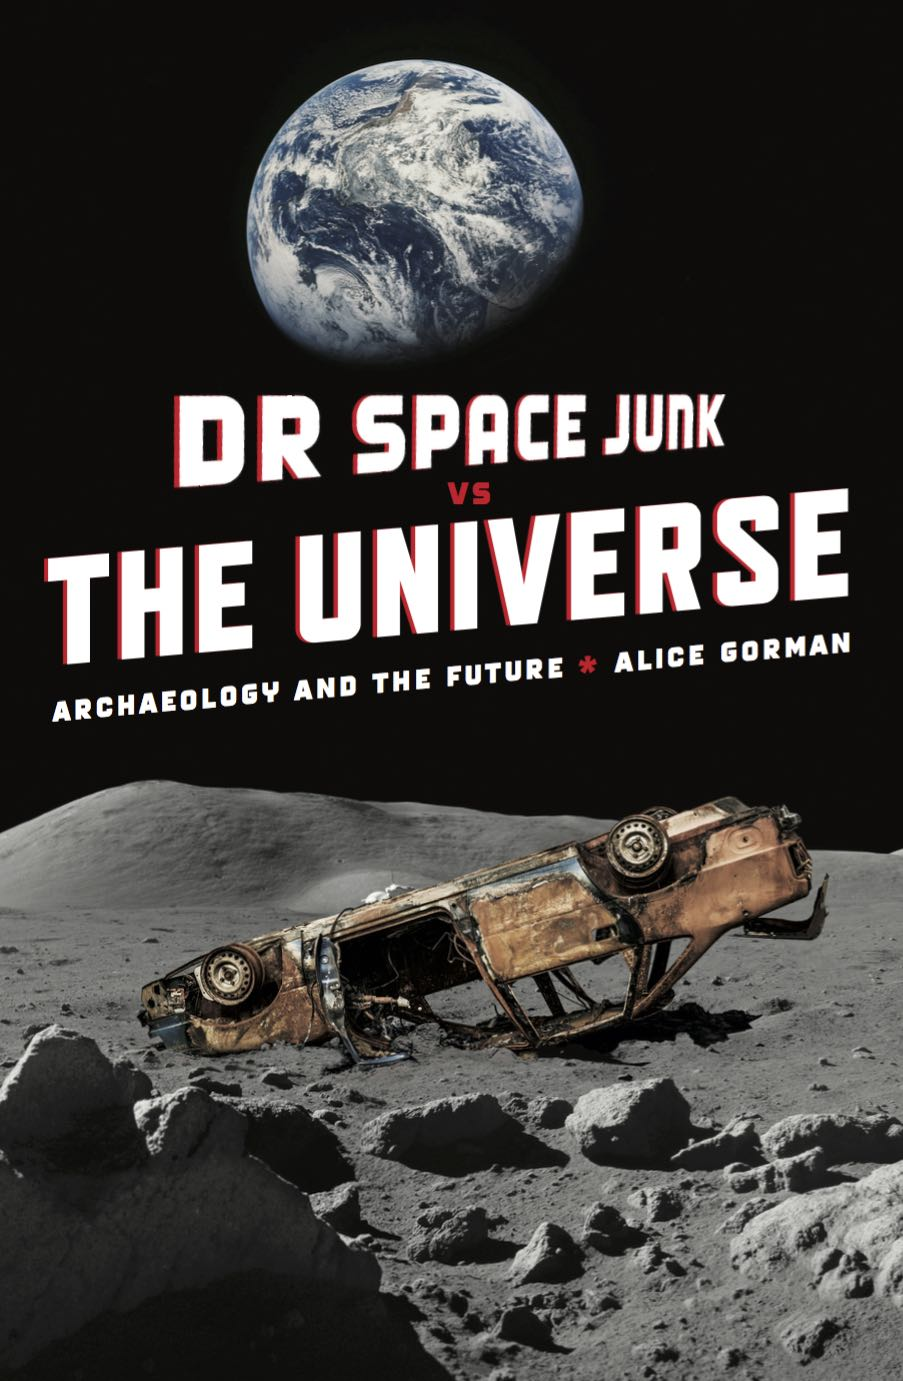 Dr Space Junk vs The Universe: Archaeology and the Future.